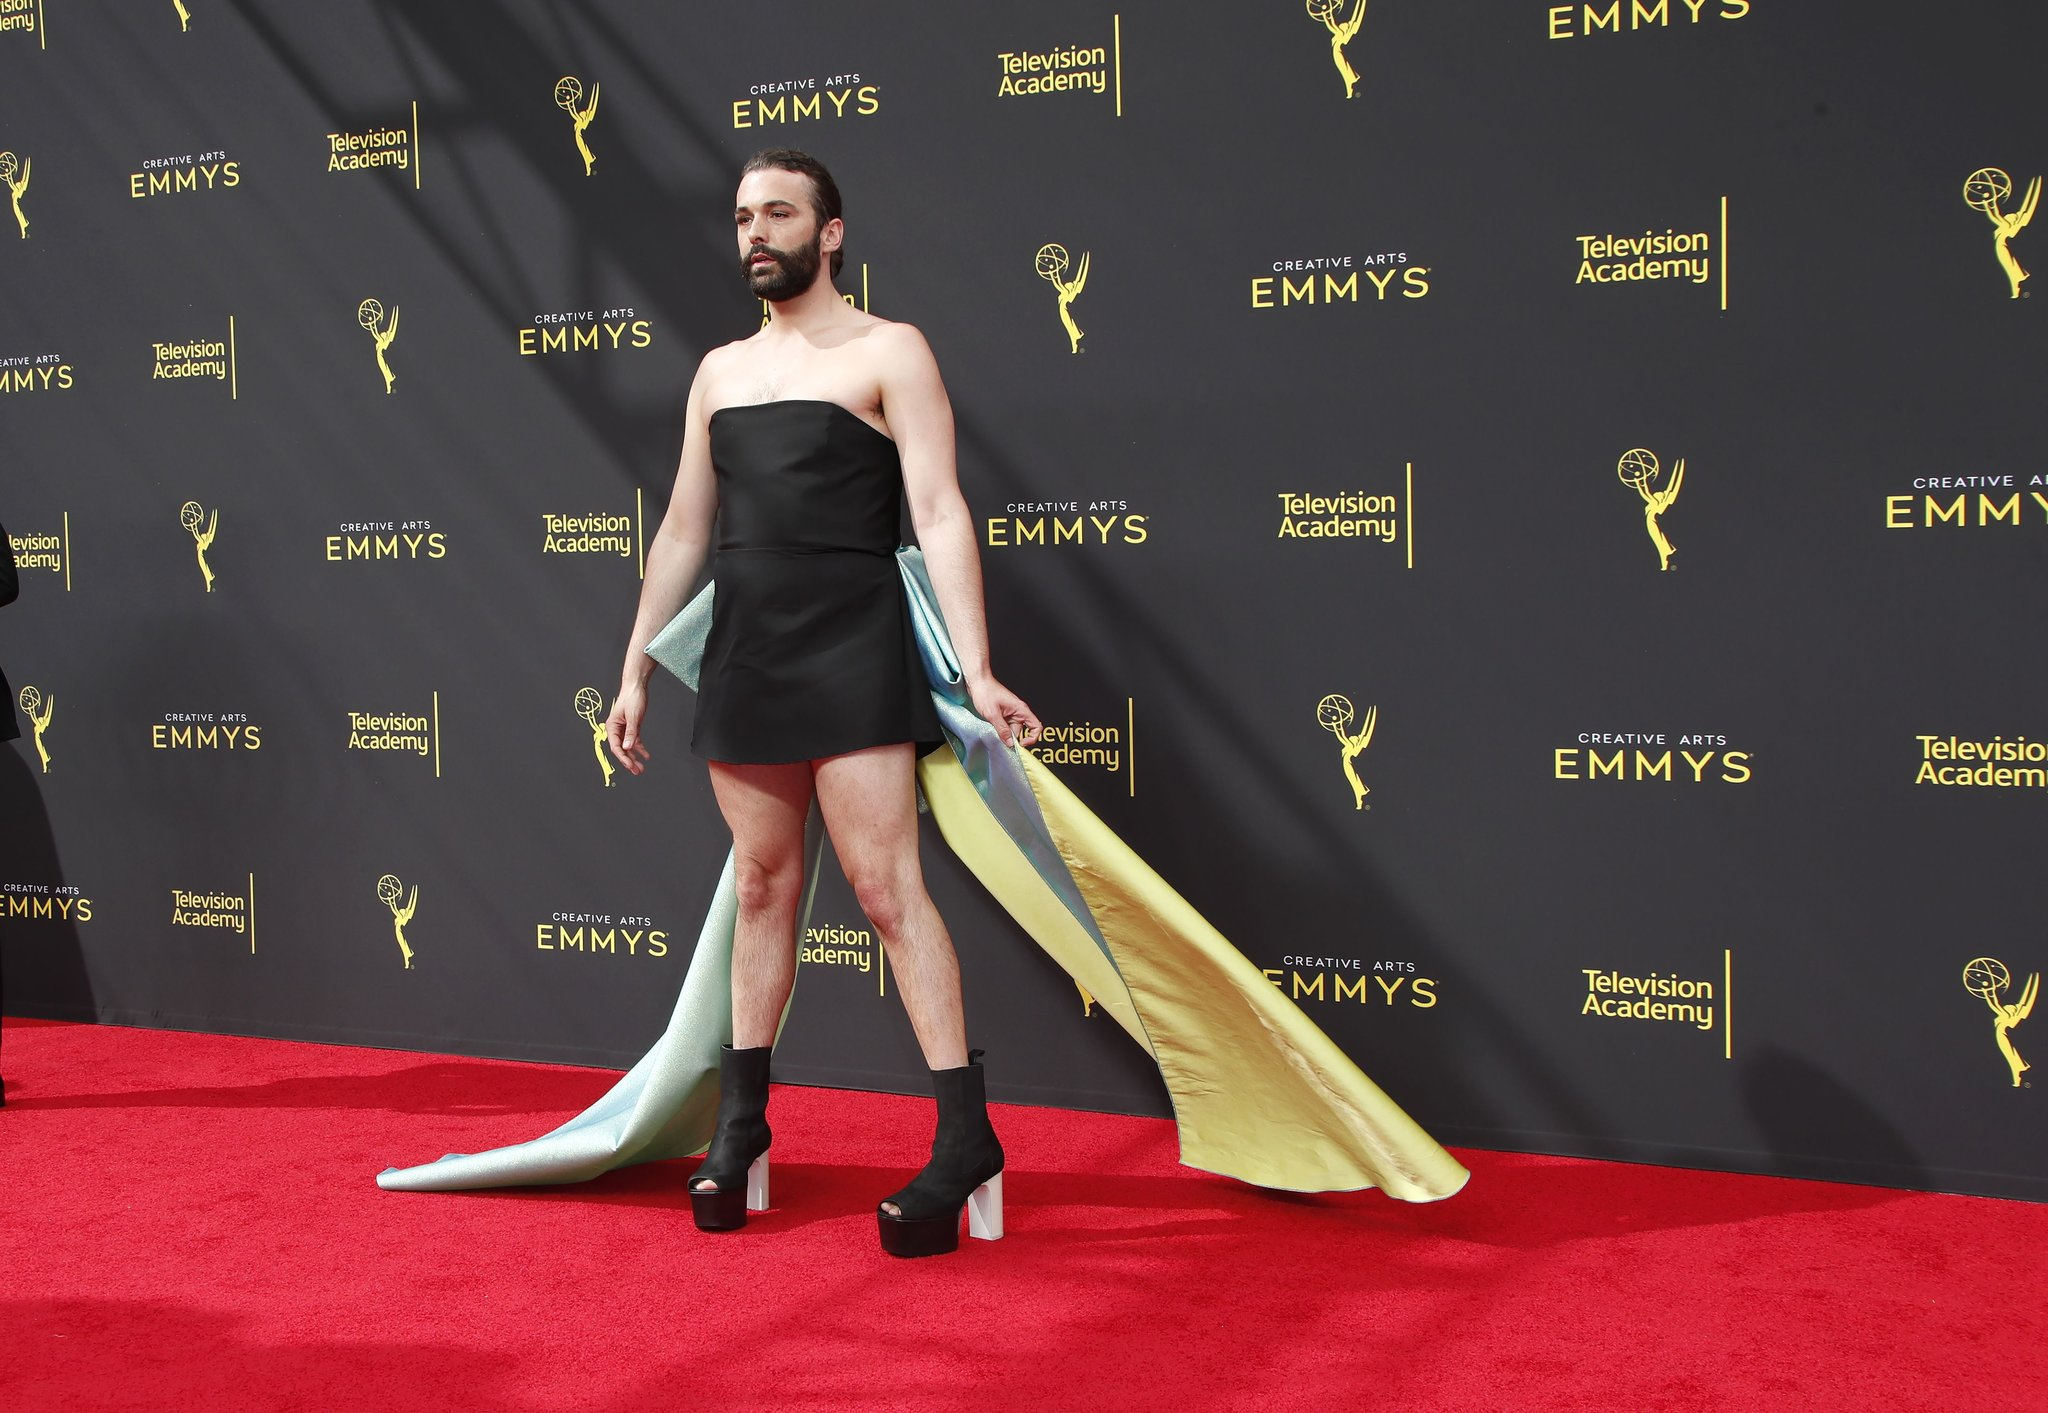 'Queer Eye' Star Jonathan Van Ness Reveals He's HIV Positive, Opens Up About Drug Addiction and Sex